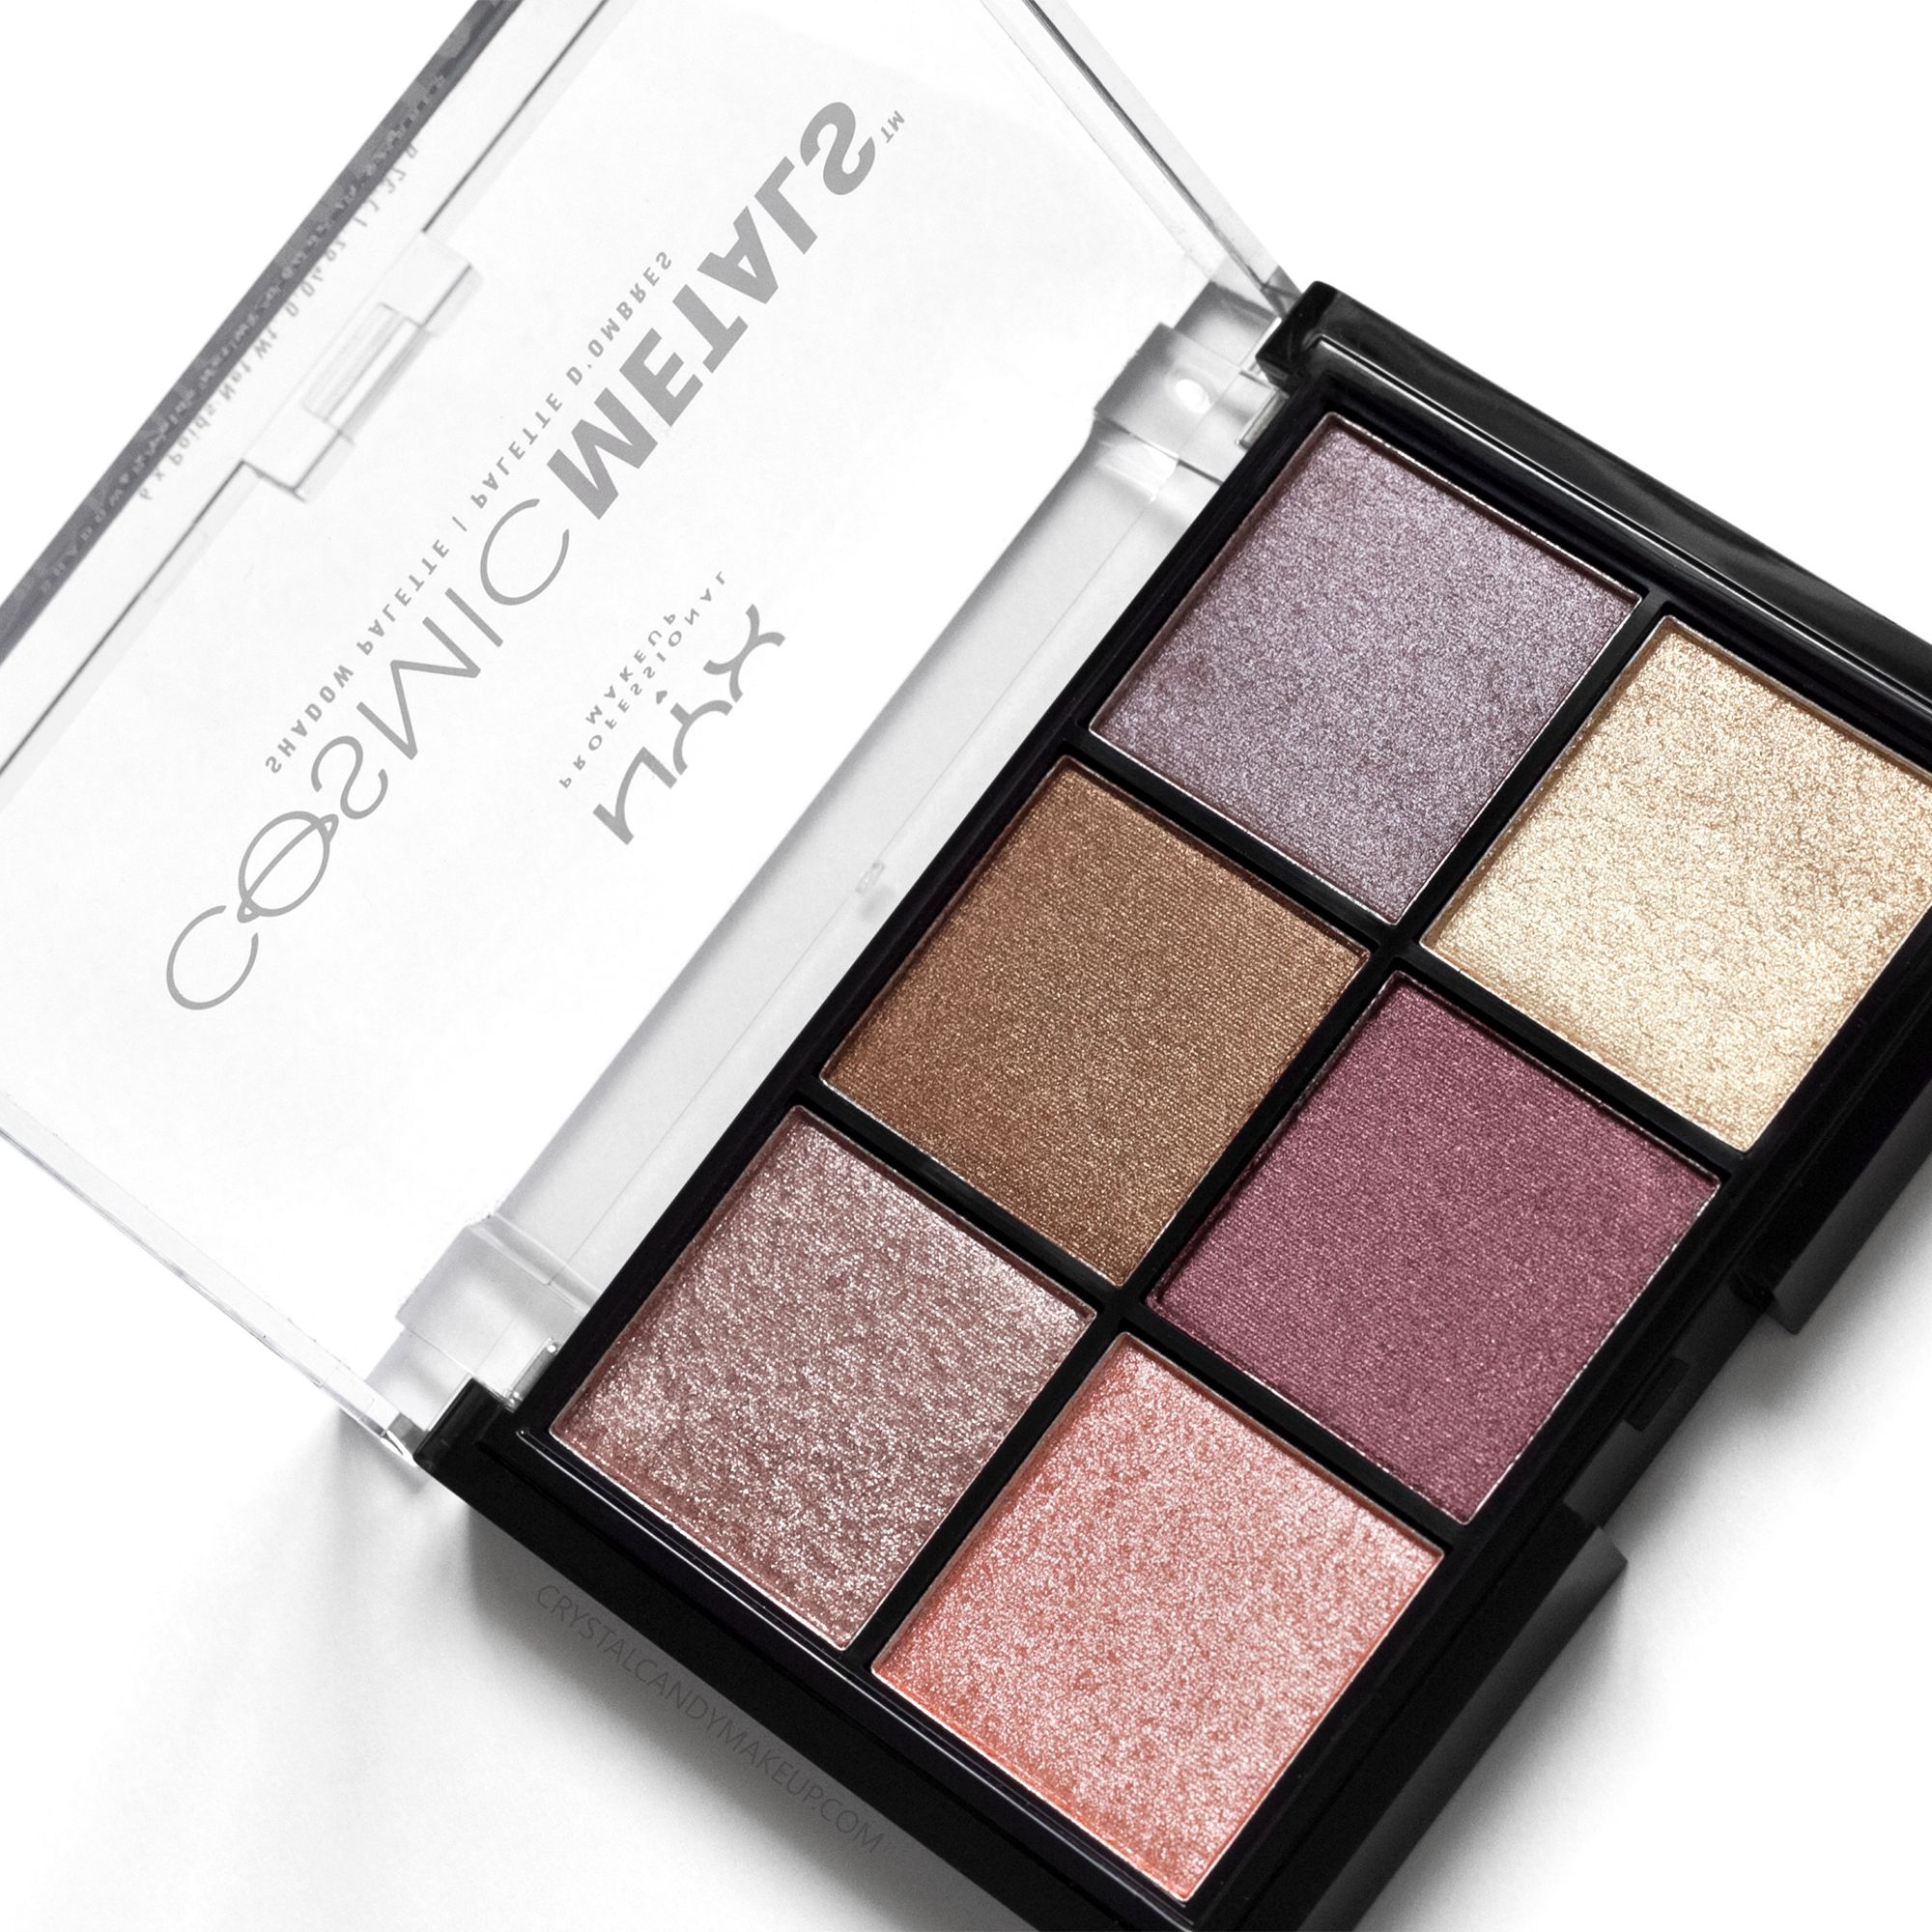 nyx cosmic metals shadow palette review and swatches. Black Bedroom Furniture Sets. Home Design Ideas